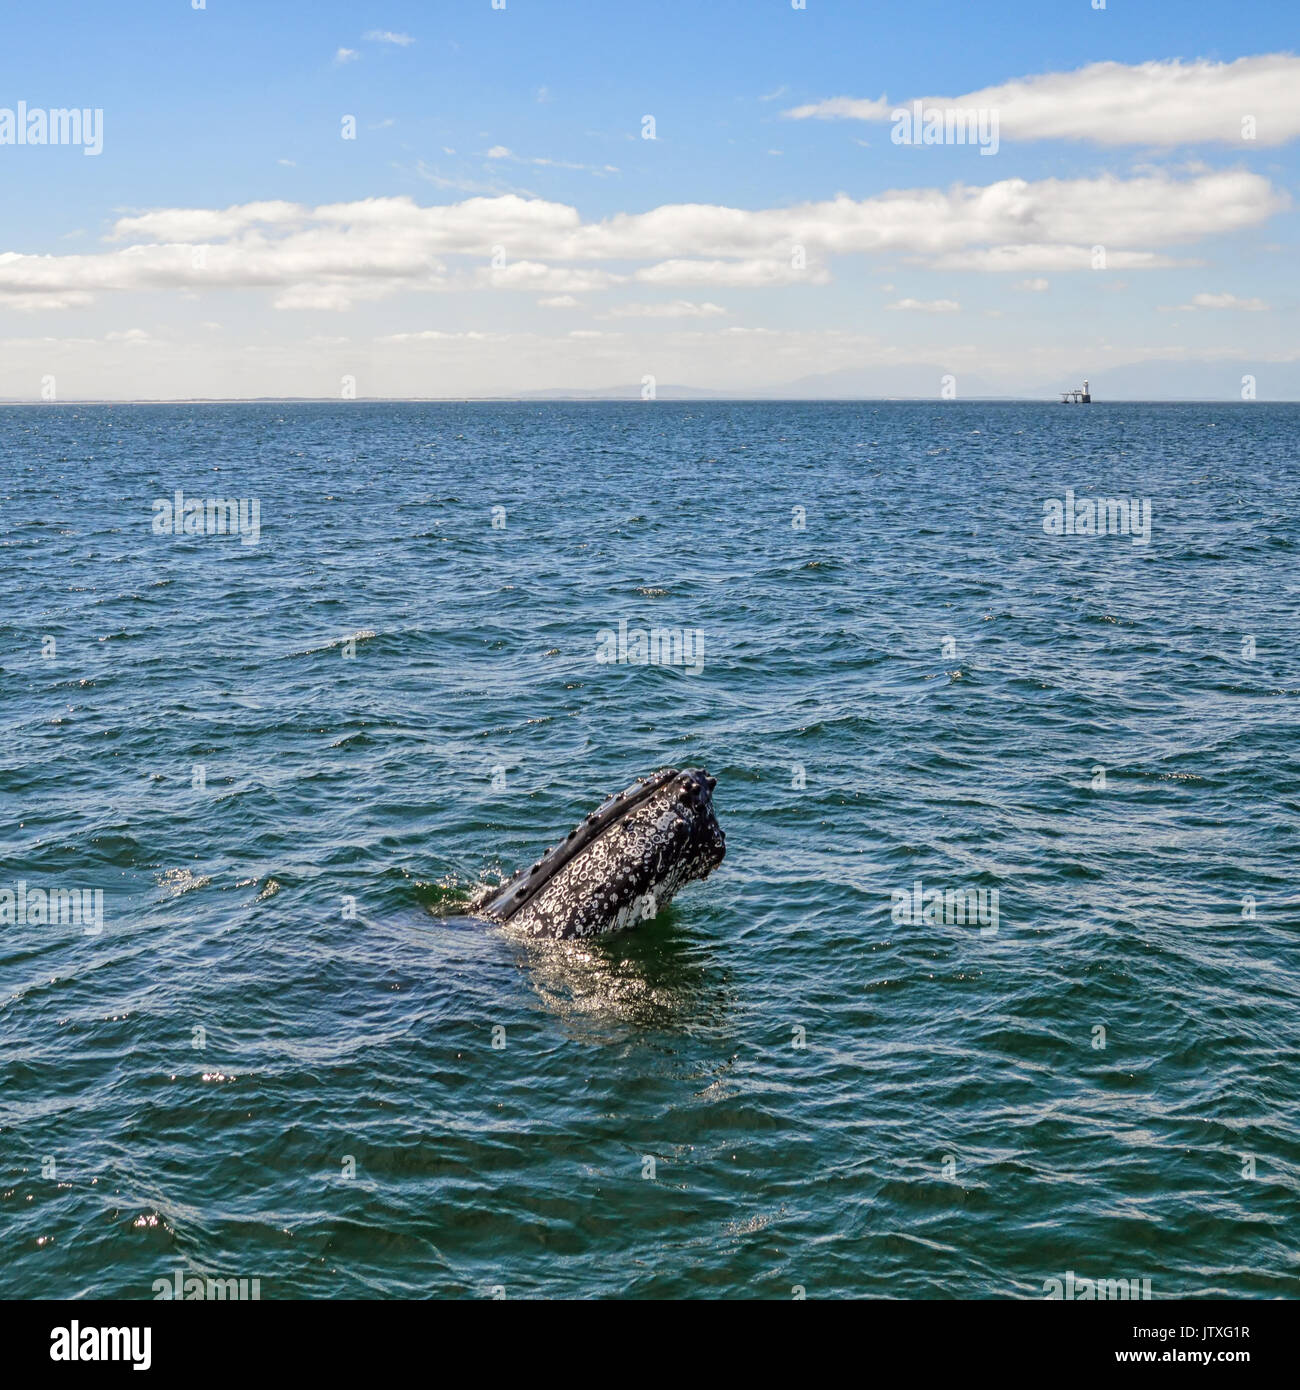 A Humpback Whale spyhopping in False Bay, South Africa - Stock Image